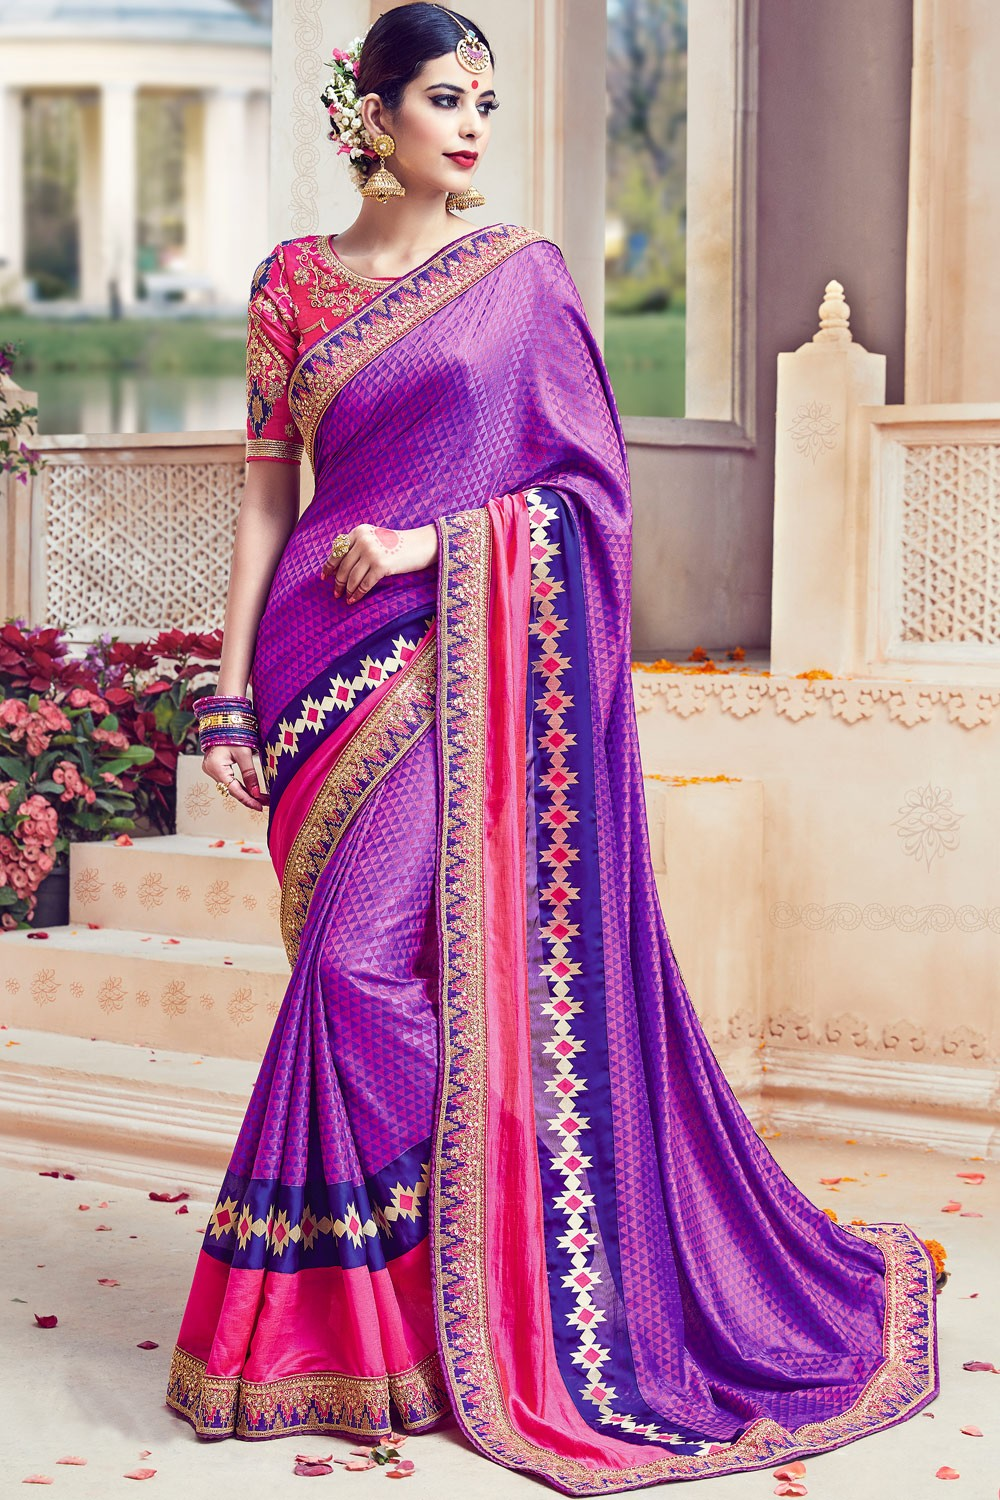 Paaneri Designer Purple Color Embroidery Border Art Silk Saree-Product Code-17119090806